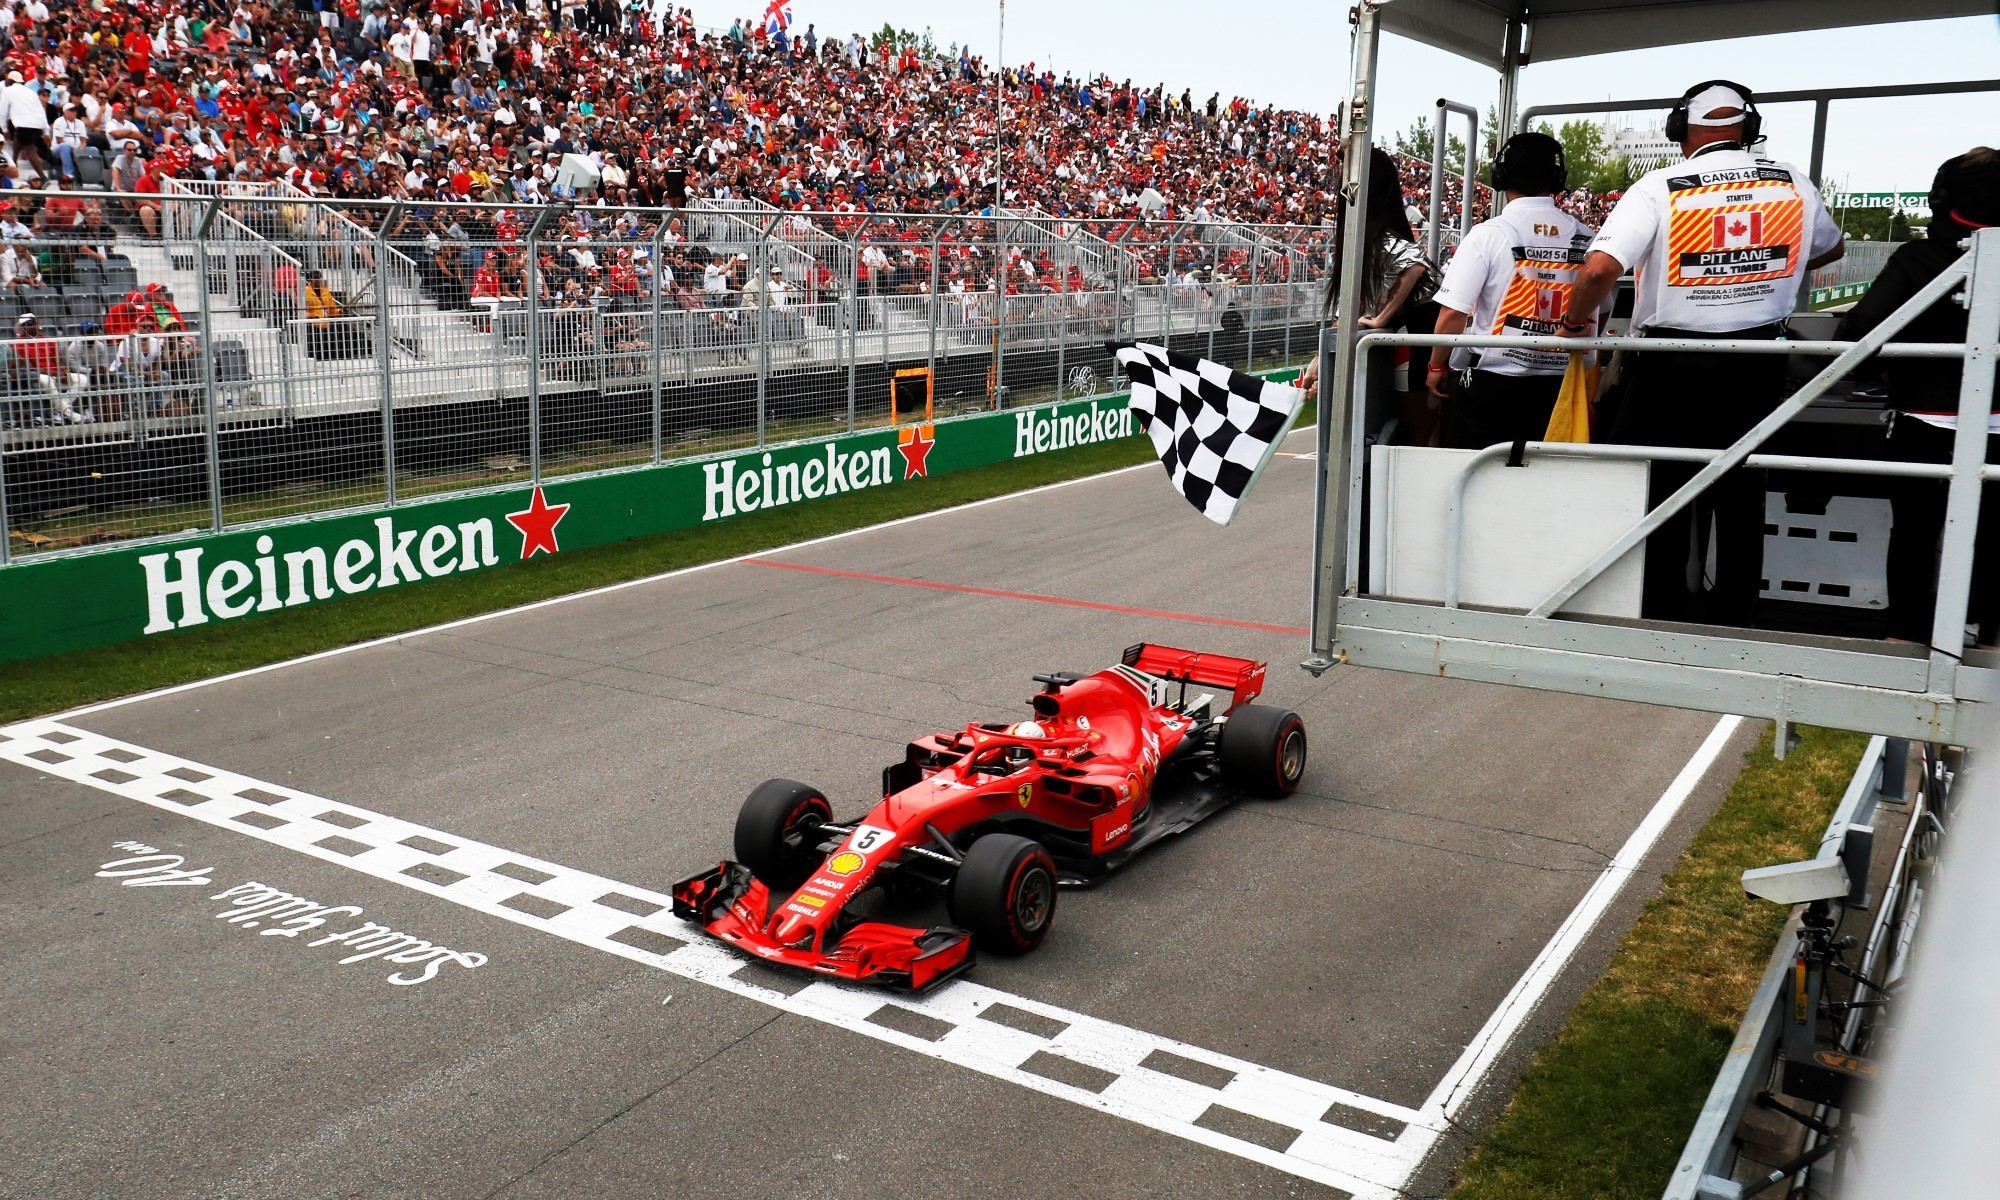 Seb Vettel took the win in Canadia